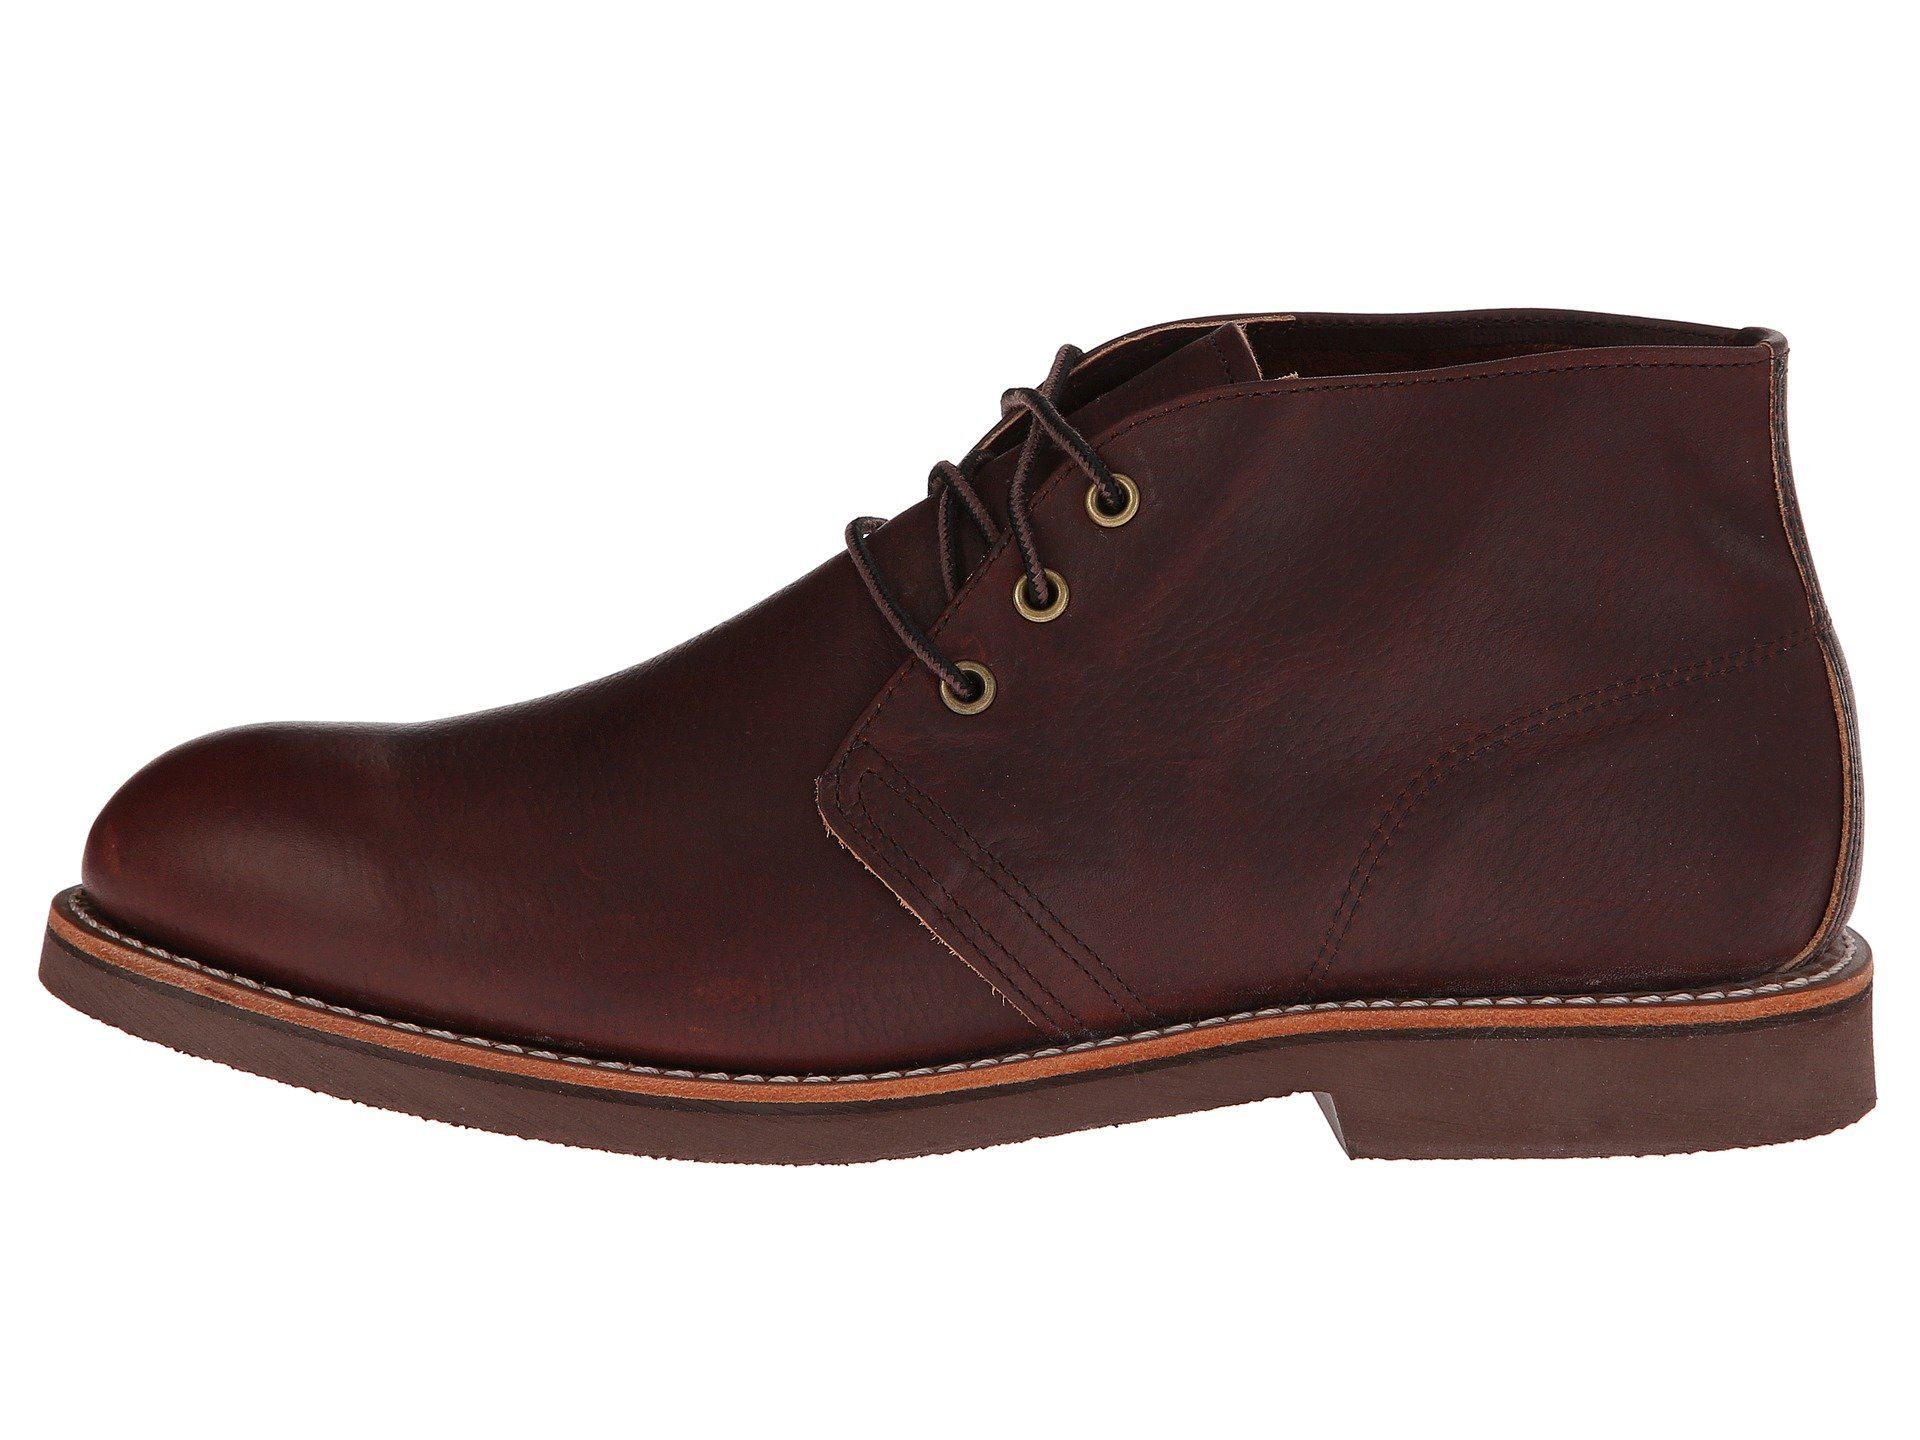 Red Wing Heritage Foreman Chukka At Zappos Com